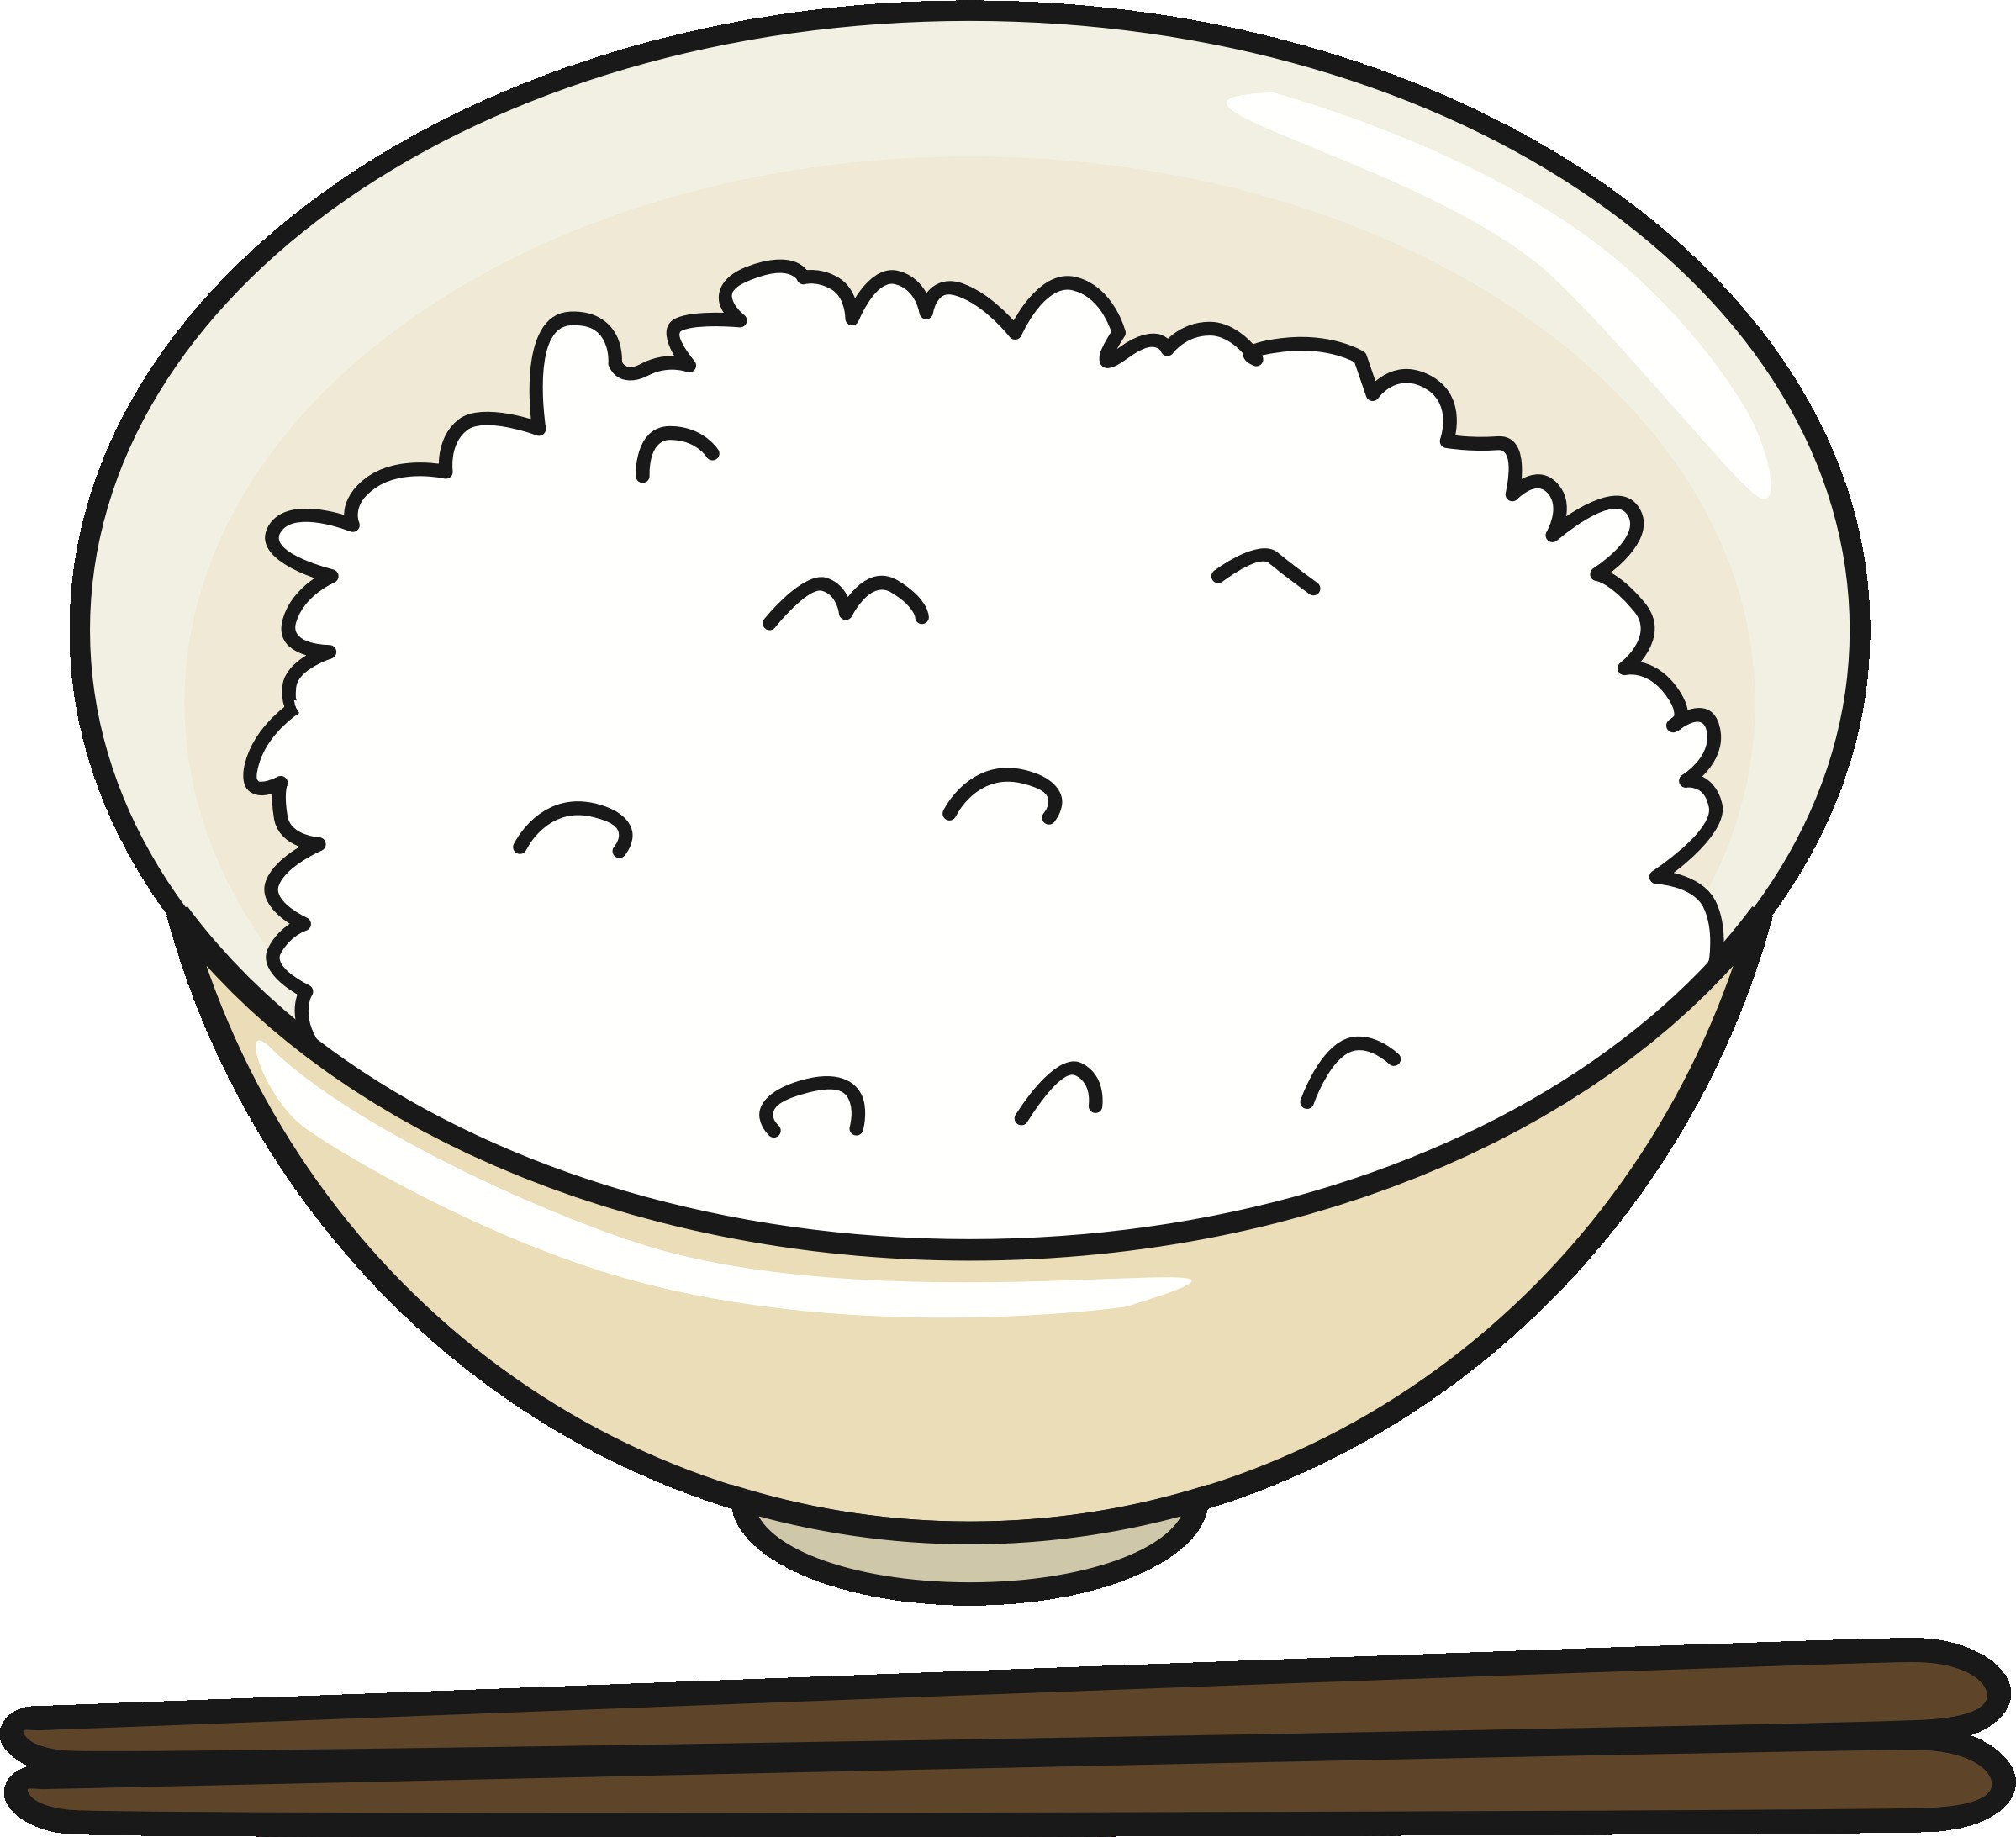 With Clipart Of Rice Publicdomainq 0006451wovccu.